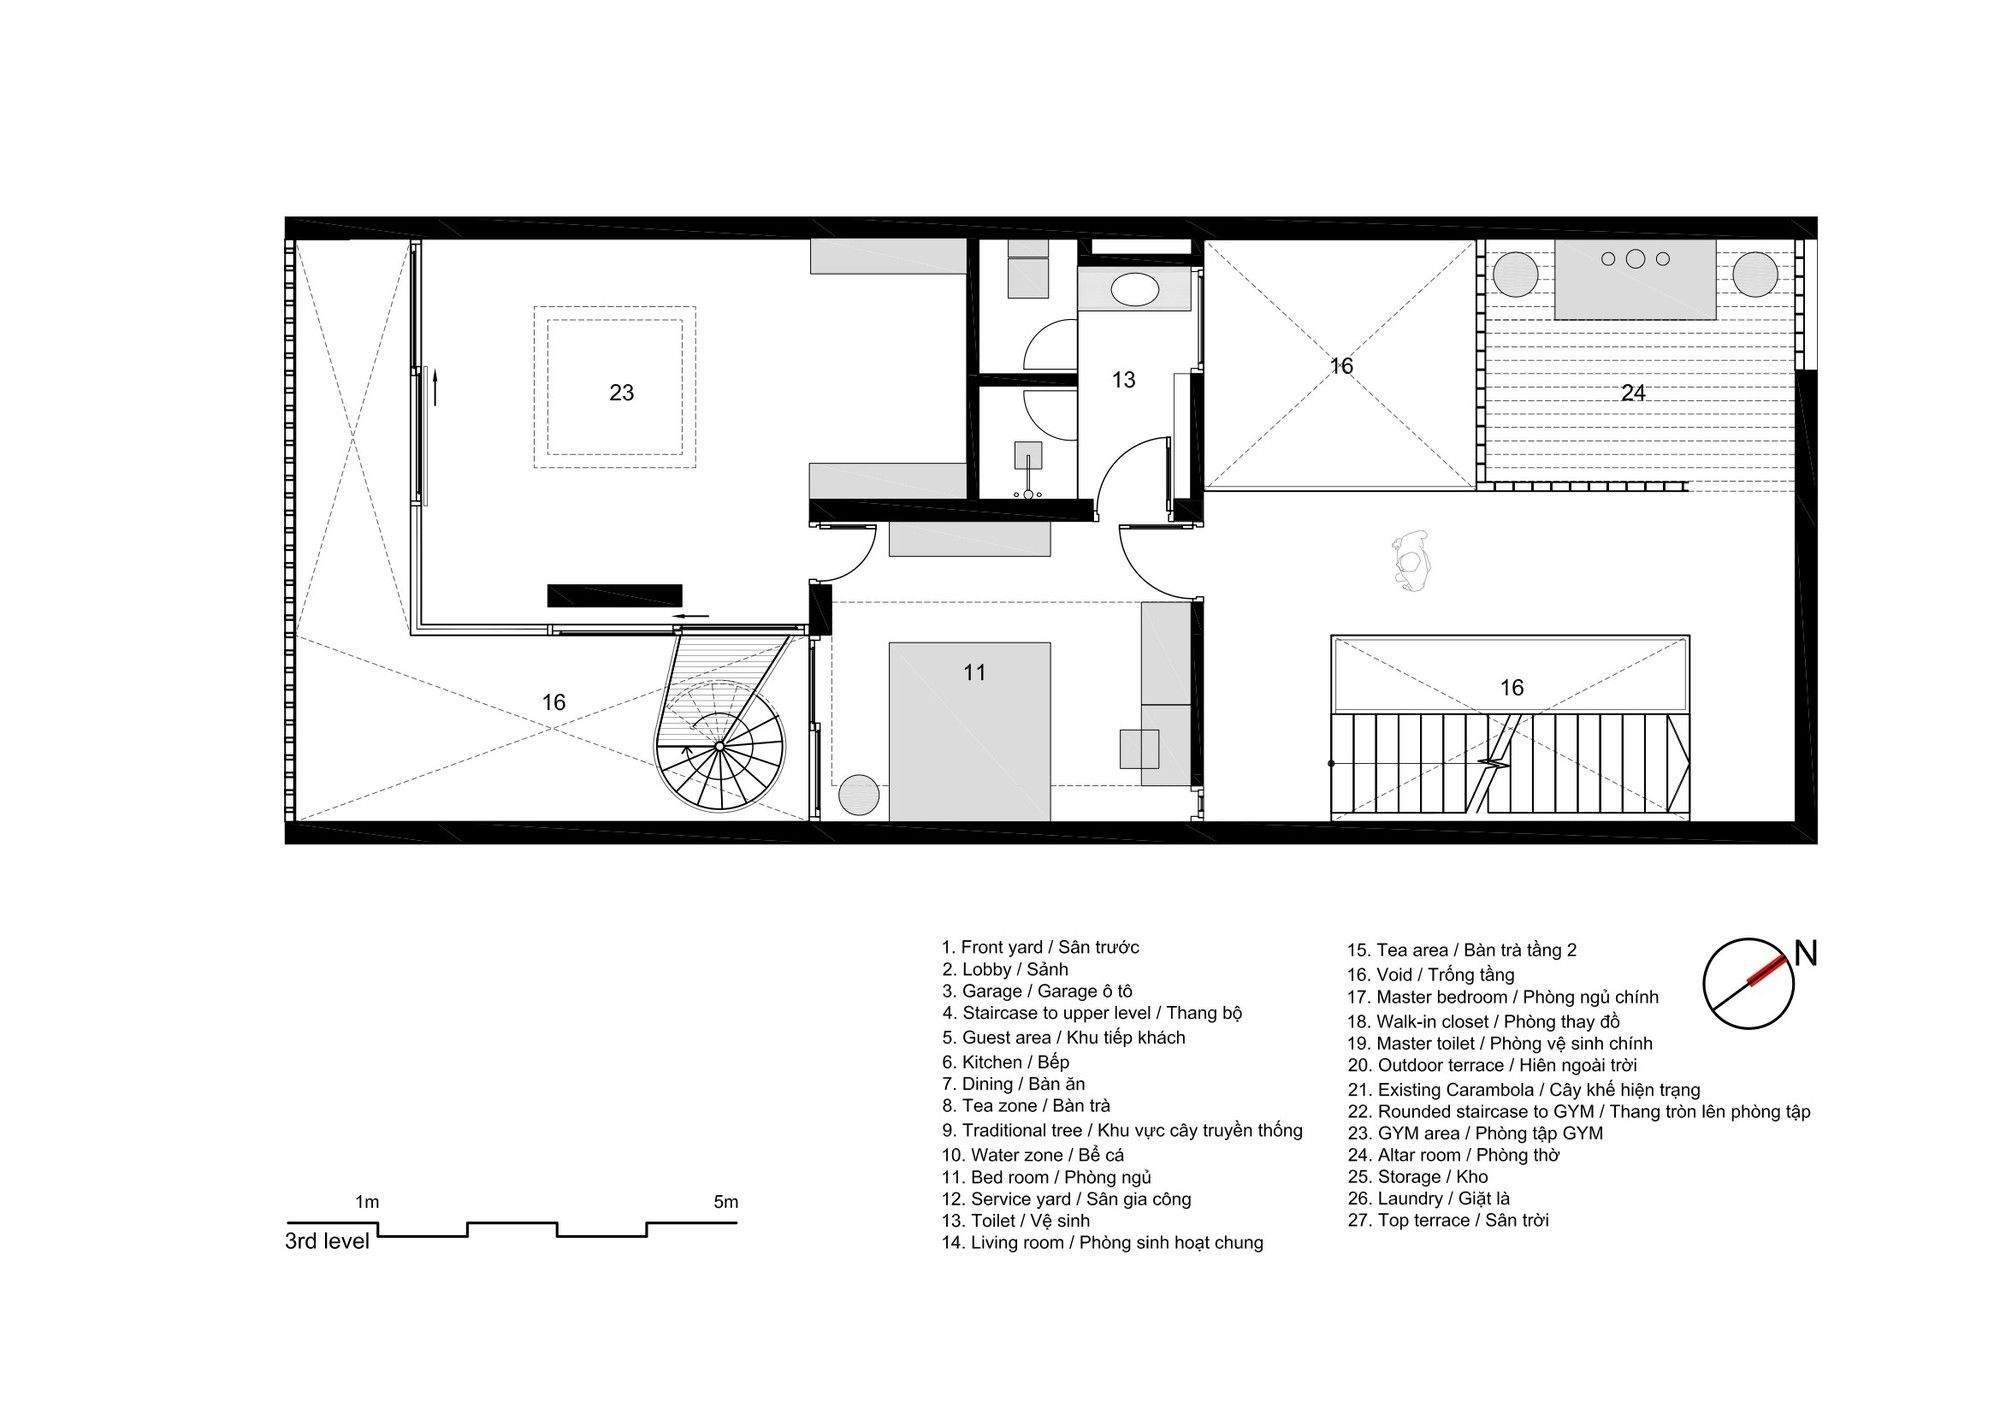 fc0d6b704487450df0f6713384150dd2 Top Result 50 New 7 Bedroom House Plans Gallery 2017 Hgd6